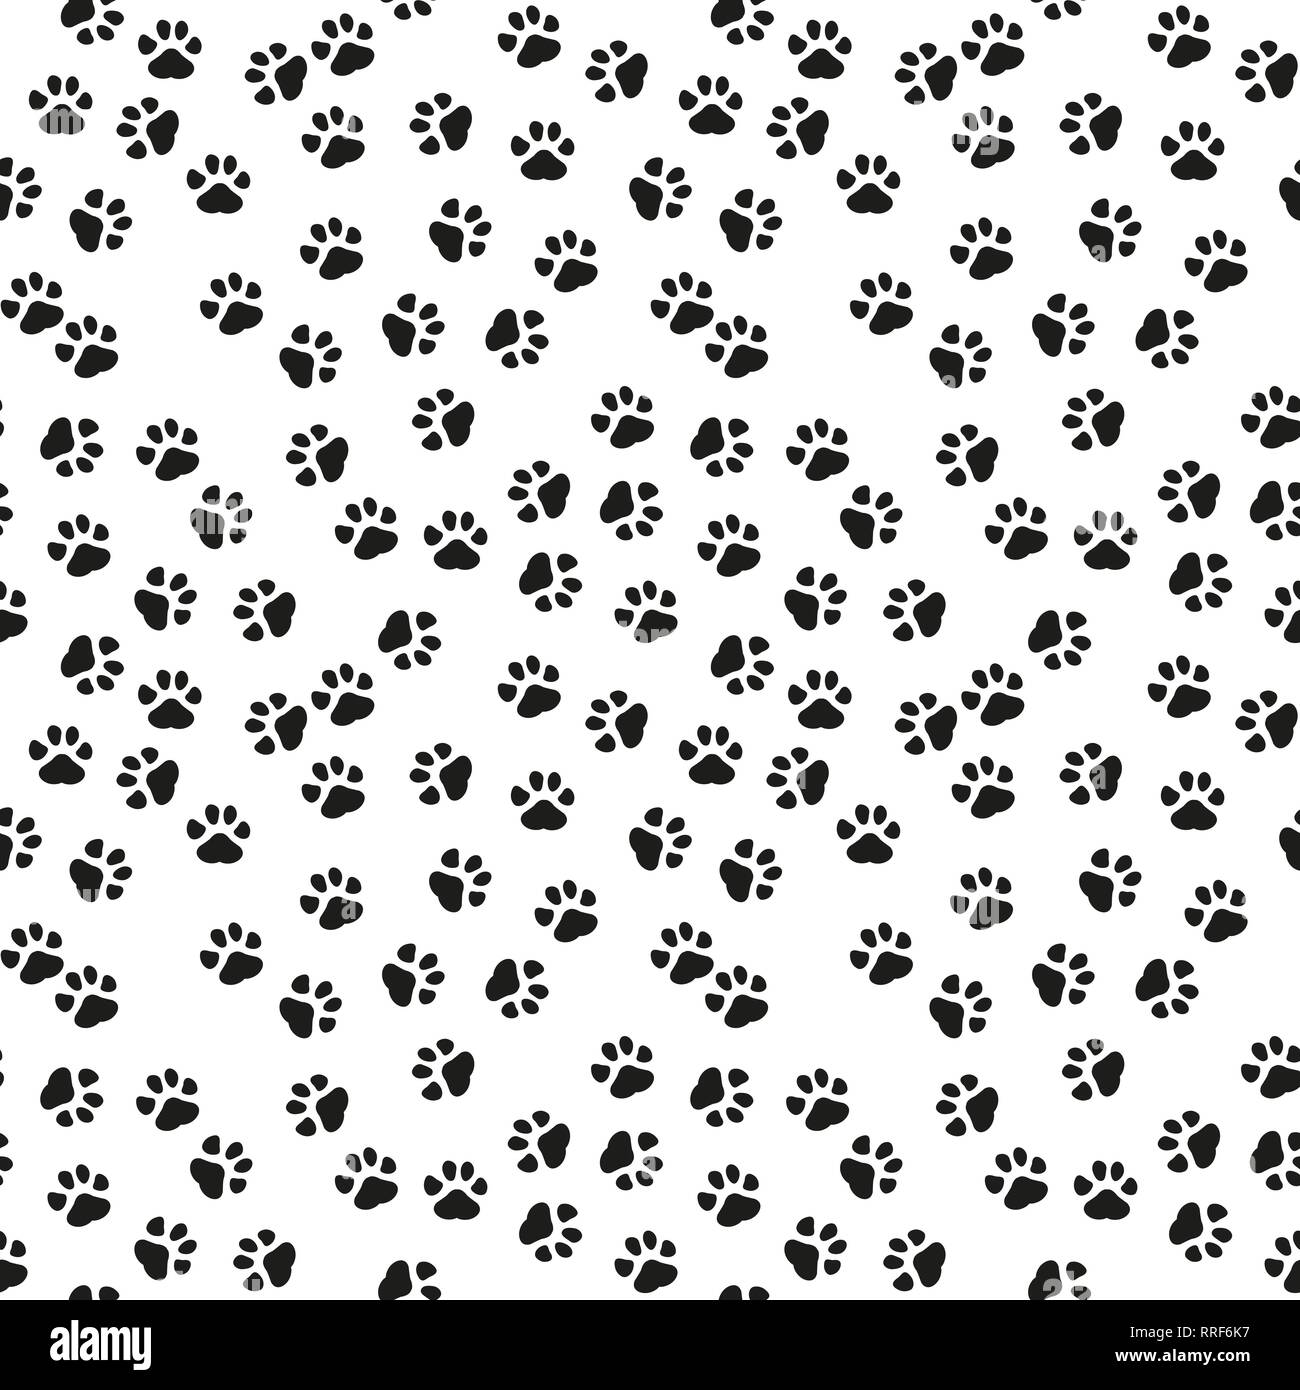 Dog Print Background High Resolution Stock Photography And Images Alamy